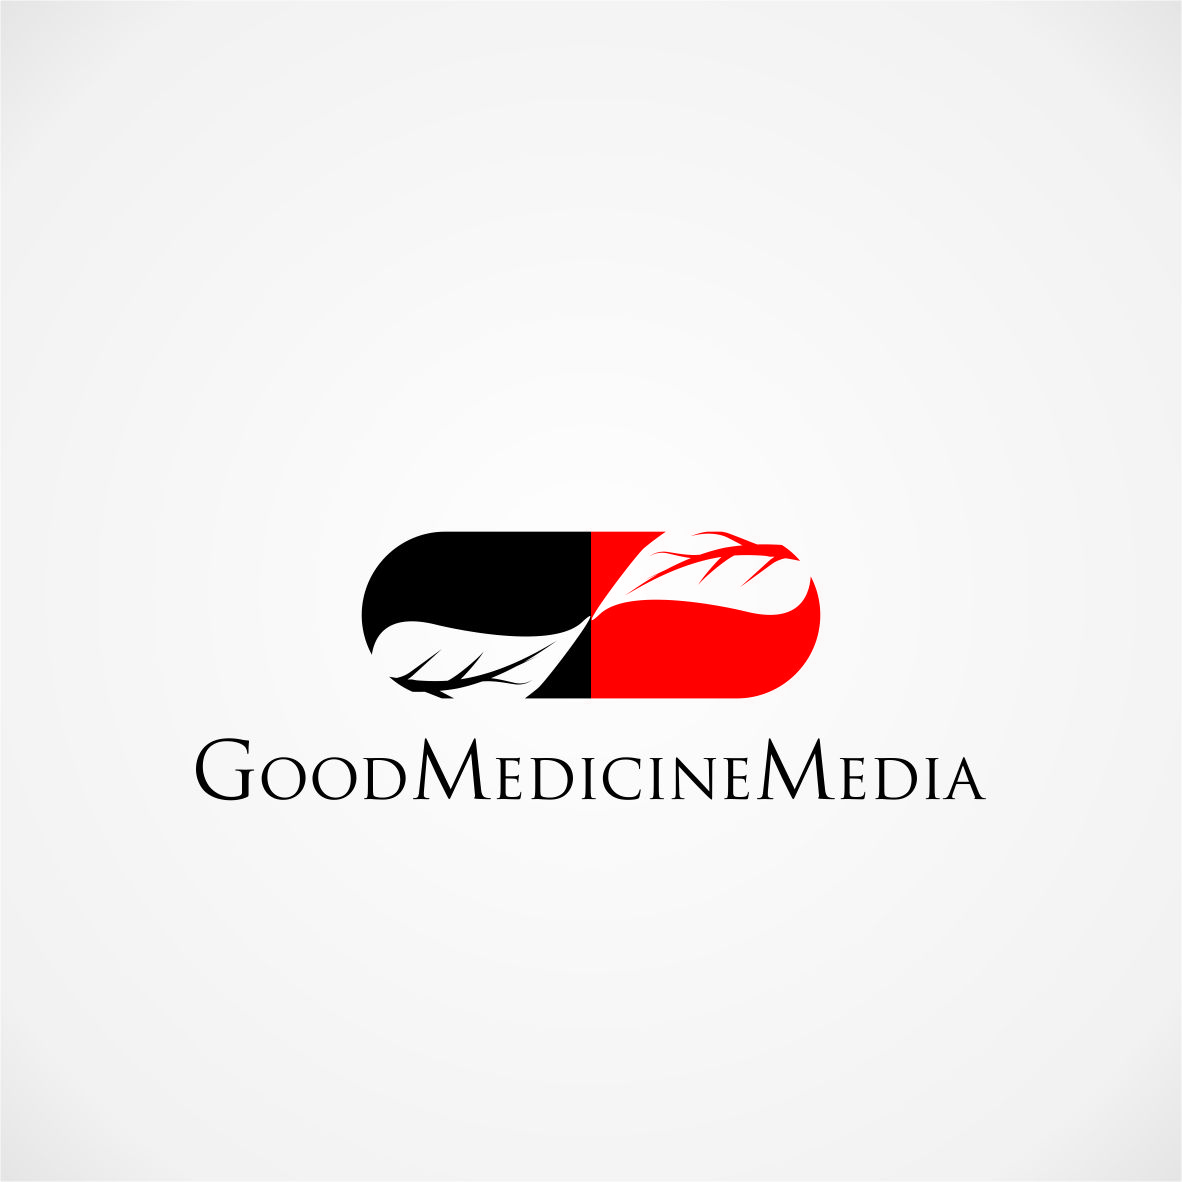 Logo Design by arteo_design - Entry No. 243 in the Logo Design Contest Good Medicine Media Logo Design.